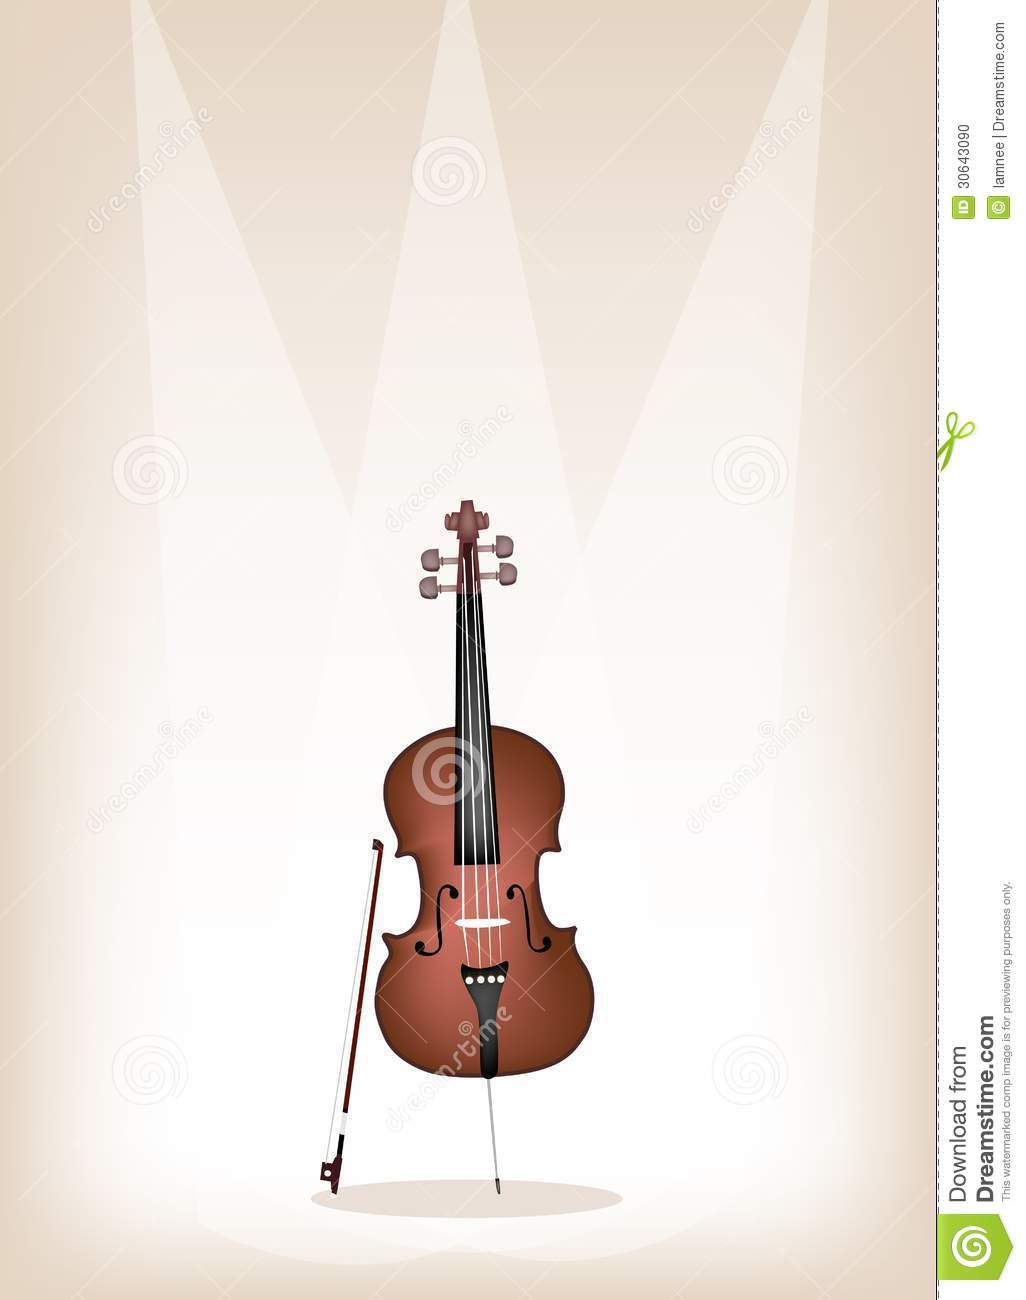 Cello cartoon cello player stock photography image 32561422 - Filename Beautiful Brown Cello Stage Background Music Instrument Illustration Bow Vintage Copy Space Text Decorated 30643090 Jpg